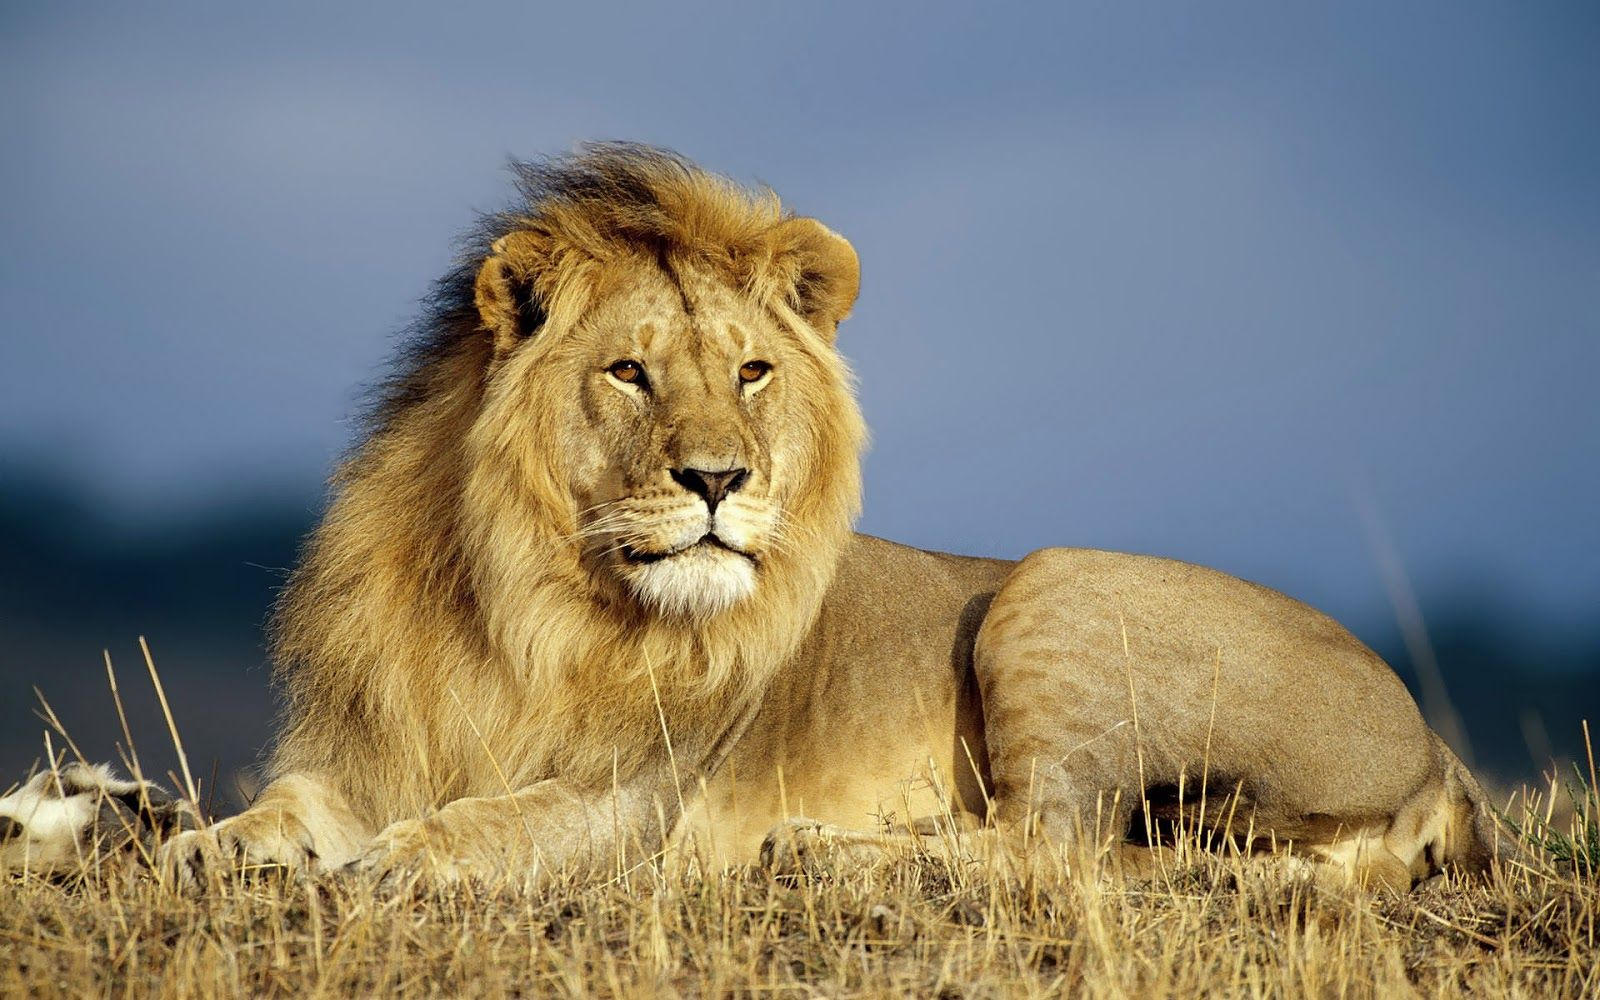 Hd wallpaper quality - 10 Different Types Of Lions With Fact And Pictures Animal Wallpaperhd